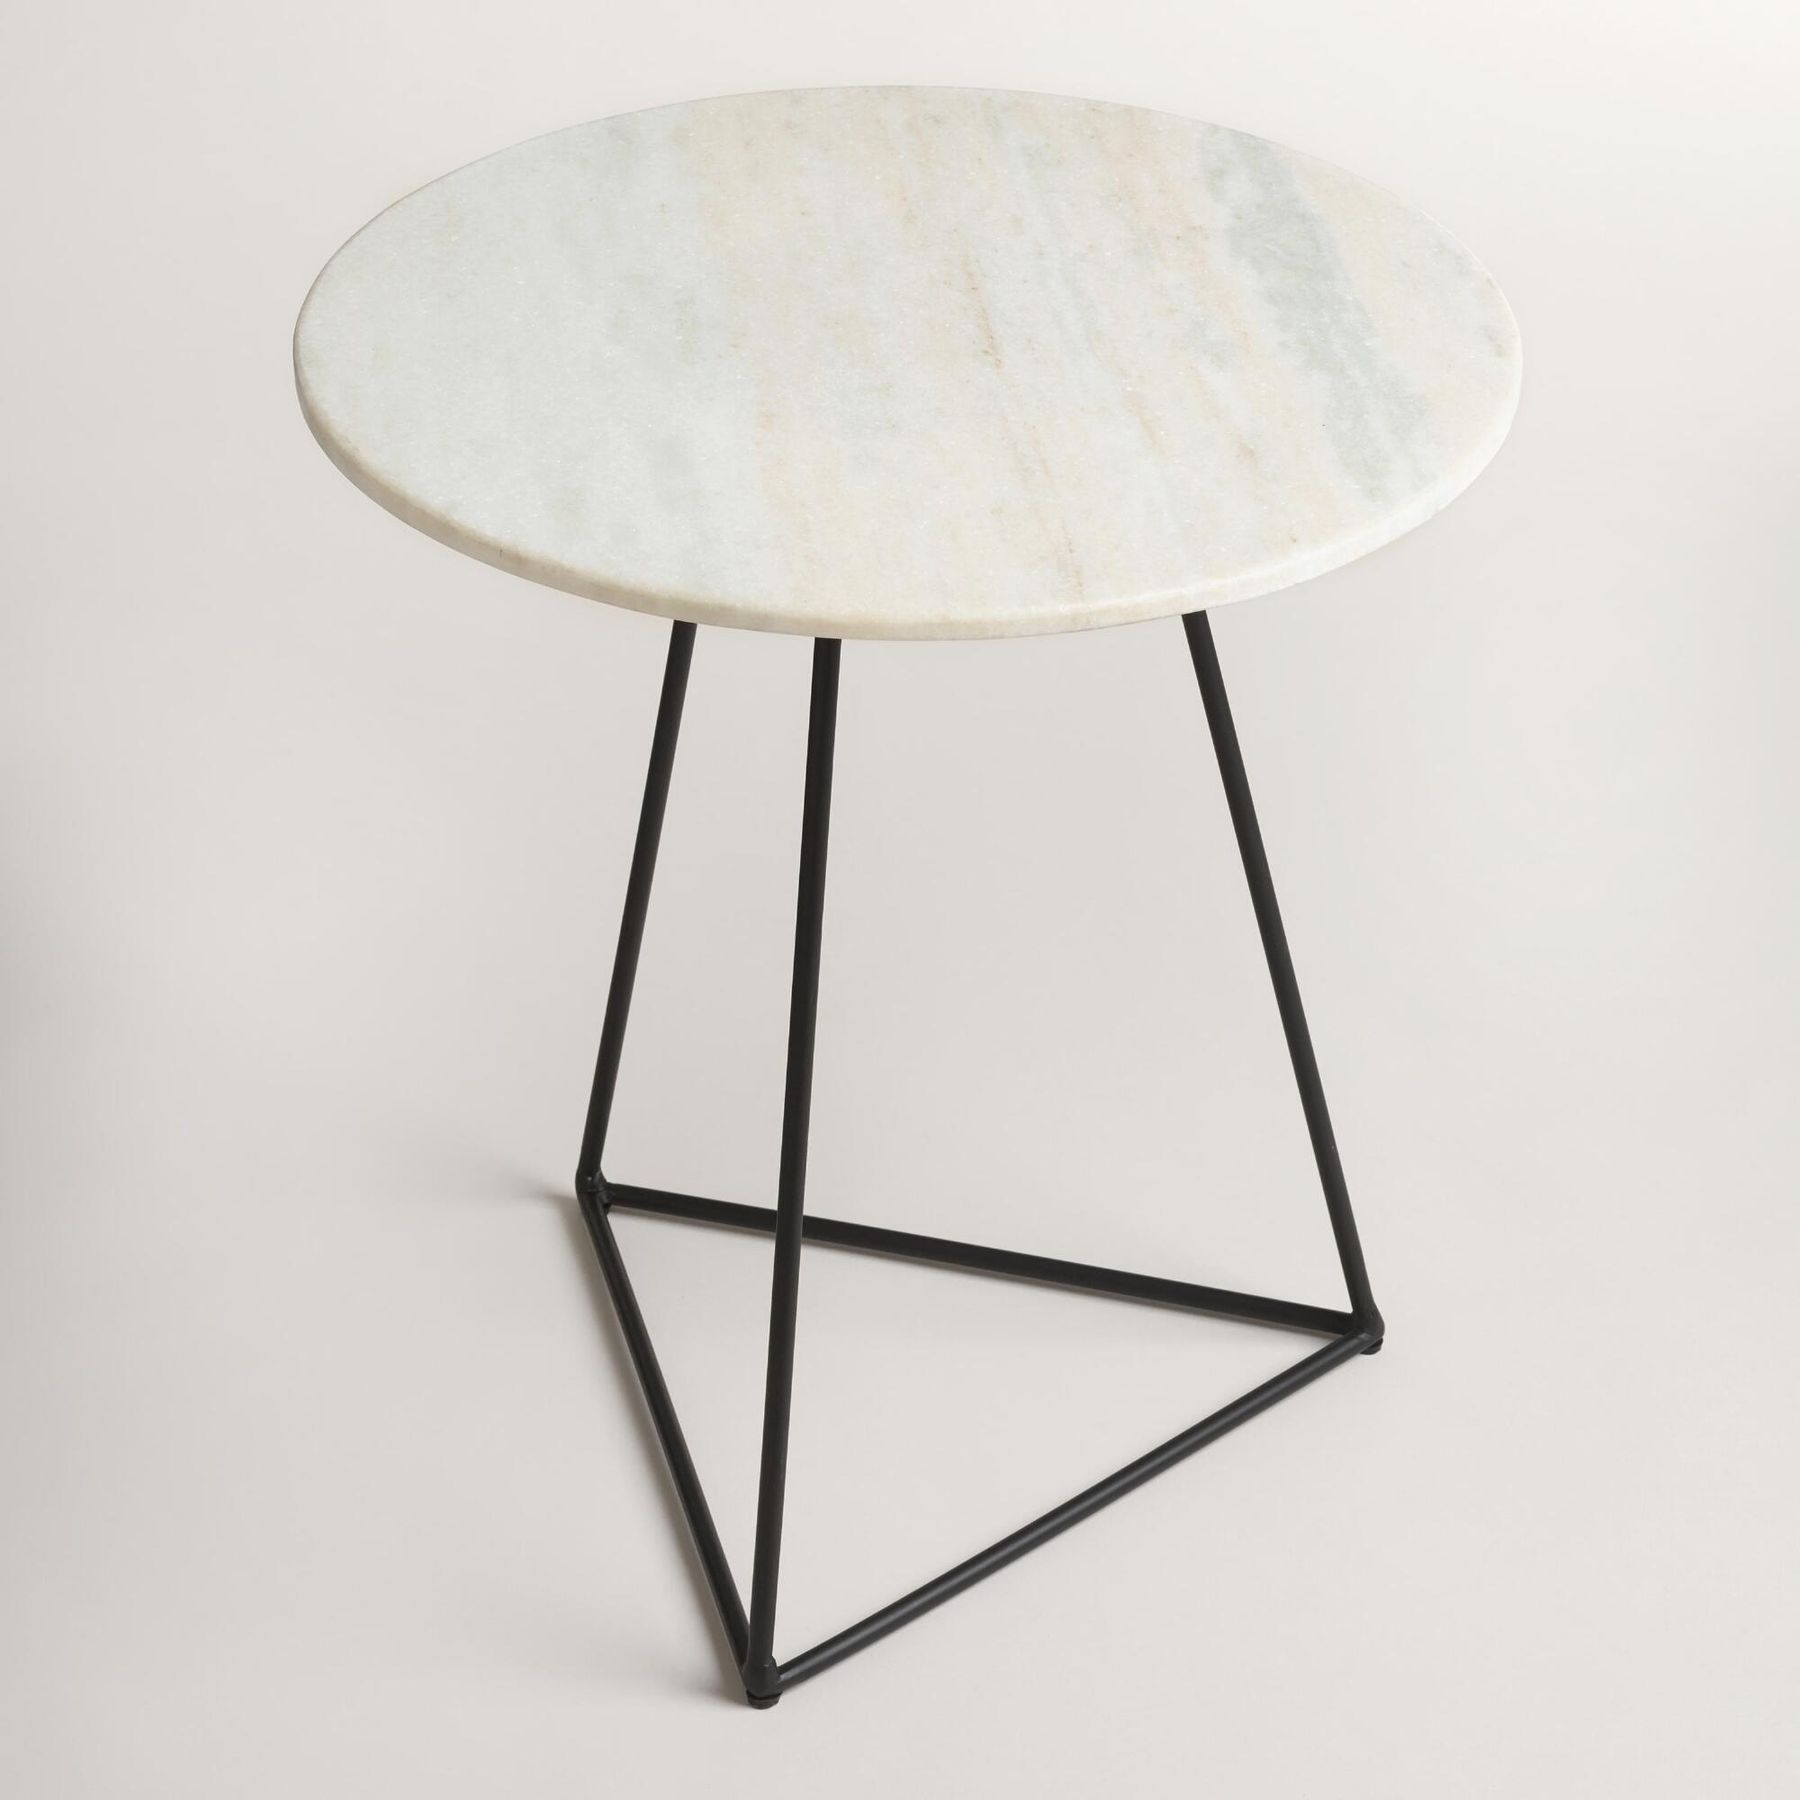 10 side tables for less than $250